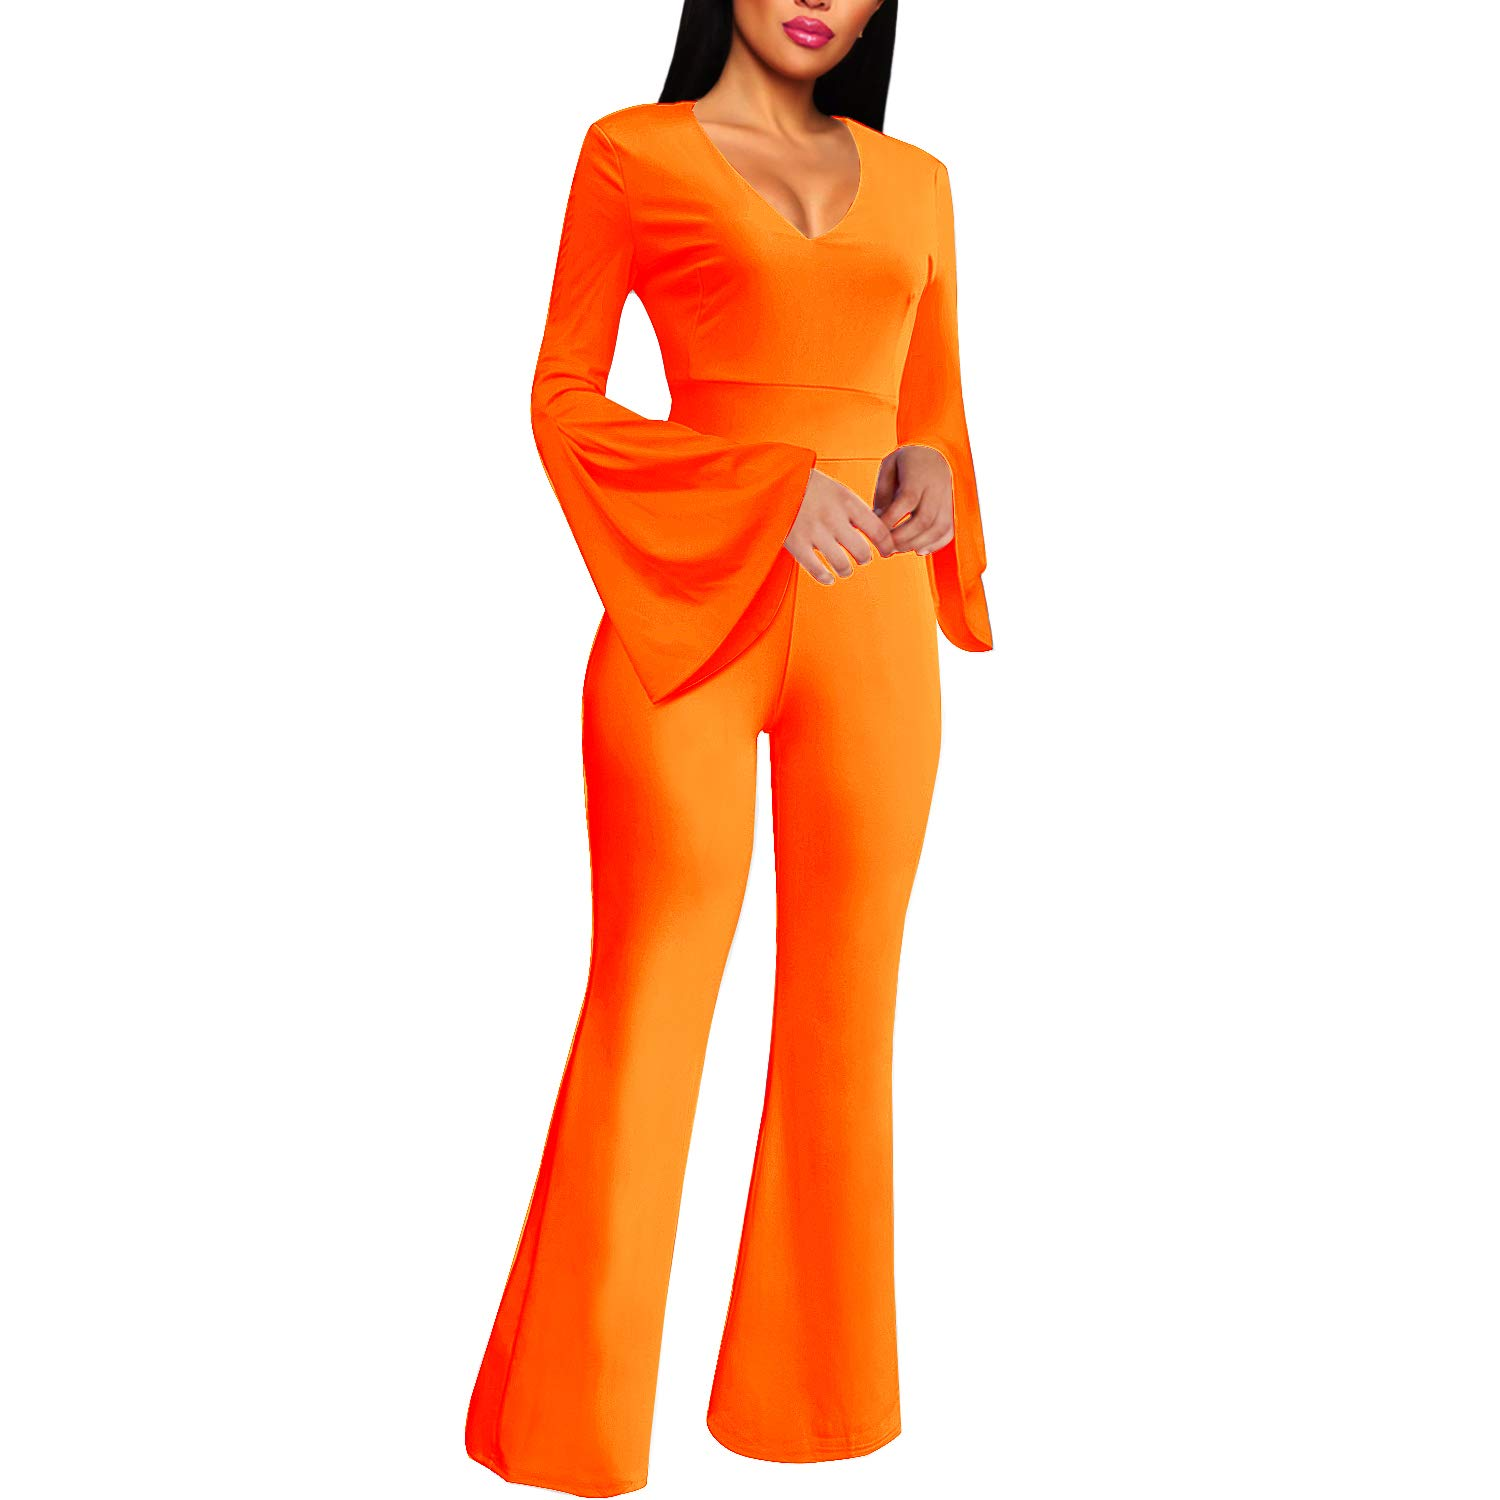 Cosics Flared Jumpsuit for Women Evening Wedding Formal, Long Sleeves V Neck Jumpsuits & Rompers with Long Bell Bottom